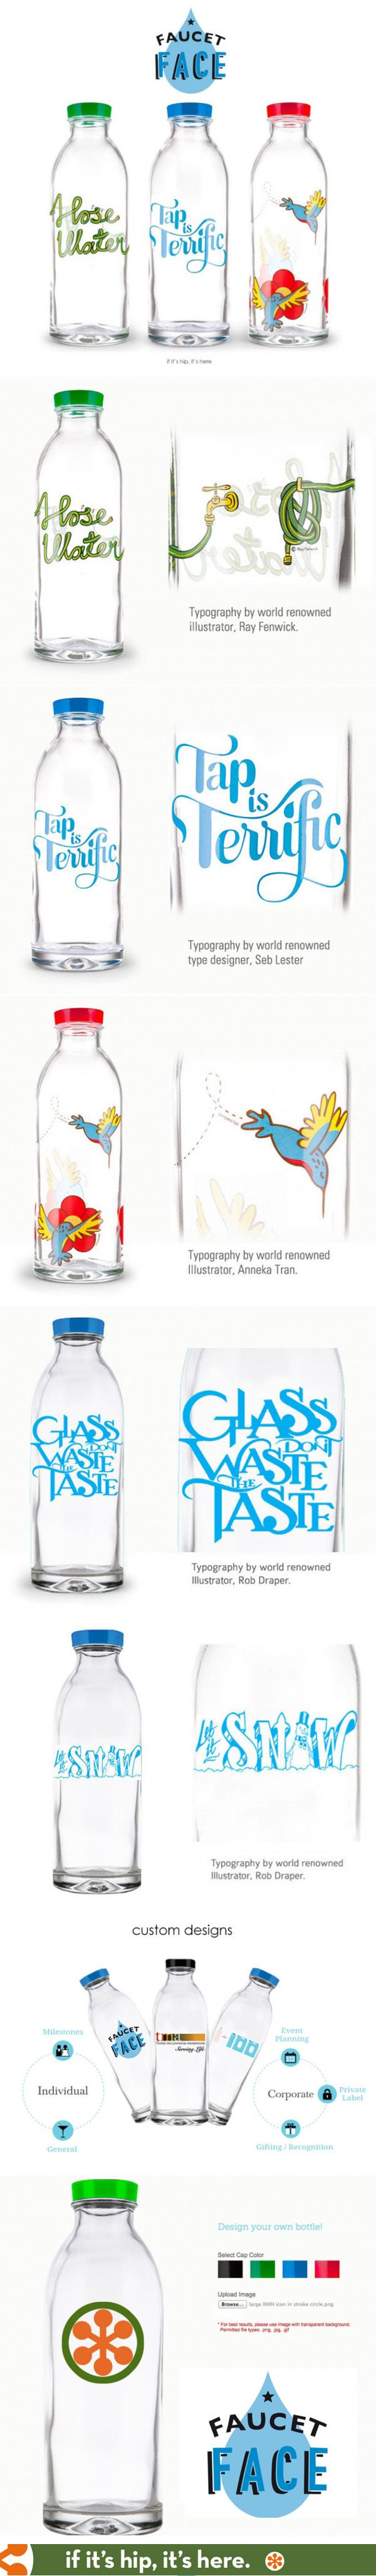 Reusable glass water bottles with typographic or illustrated designs give back to charity. You can also make your own! http://www.ifitshipitshere.com/glass-bottles-give-back-faucet-face/